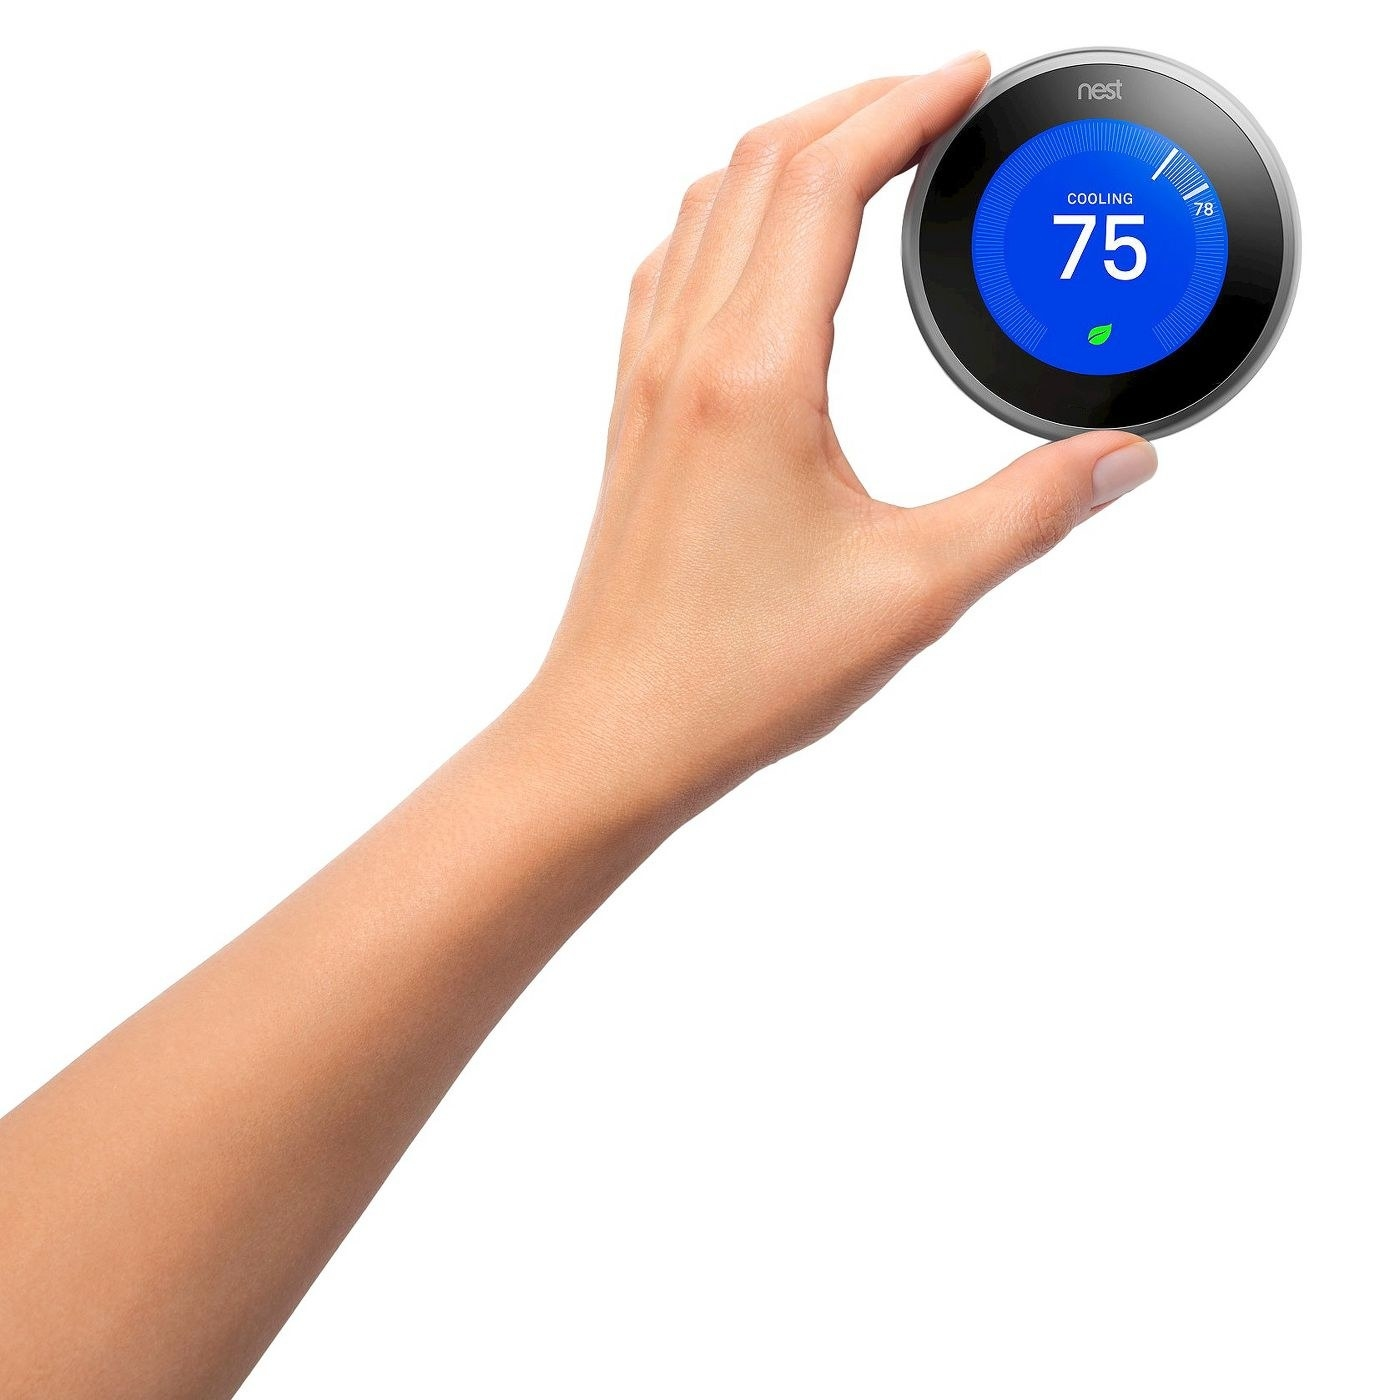 A person adjusts the thermostat